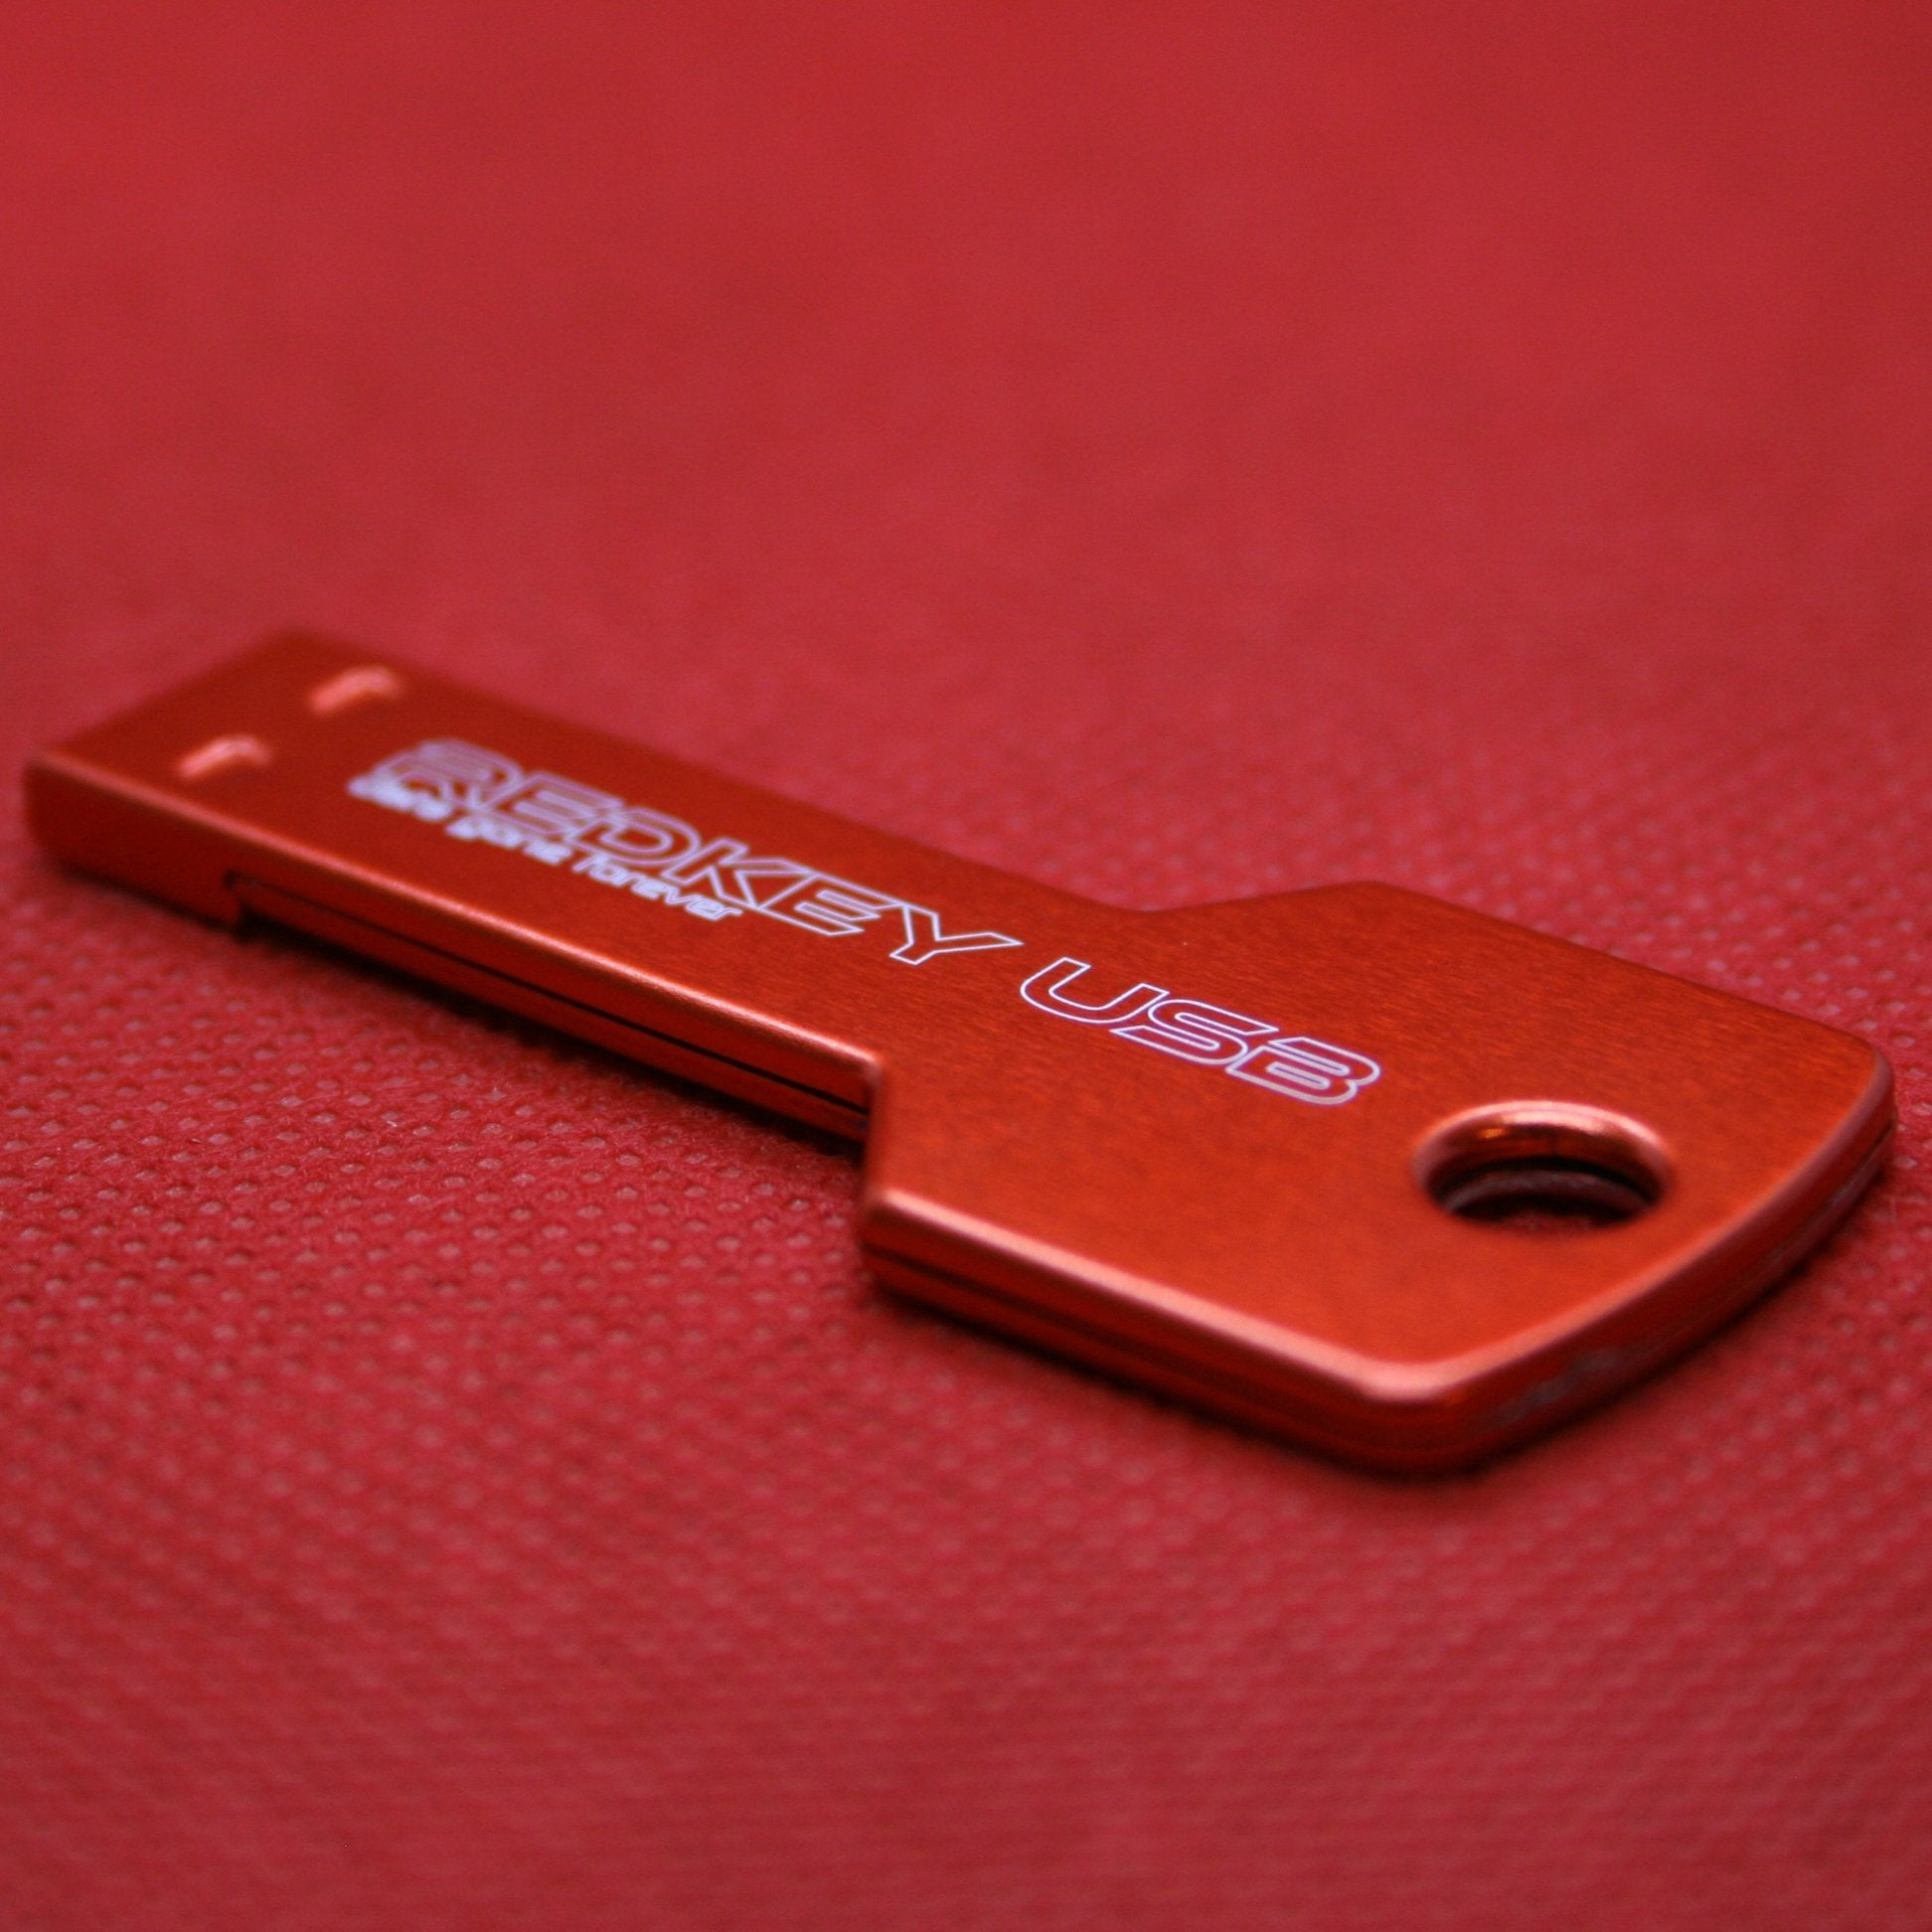 Redkey USB Computer Data Erasing Device